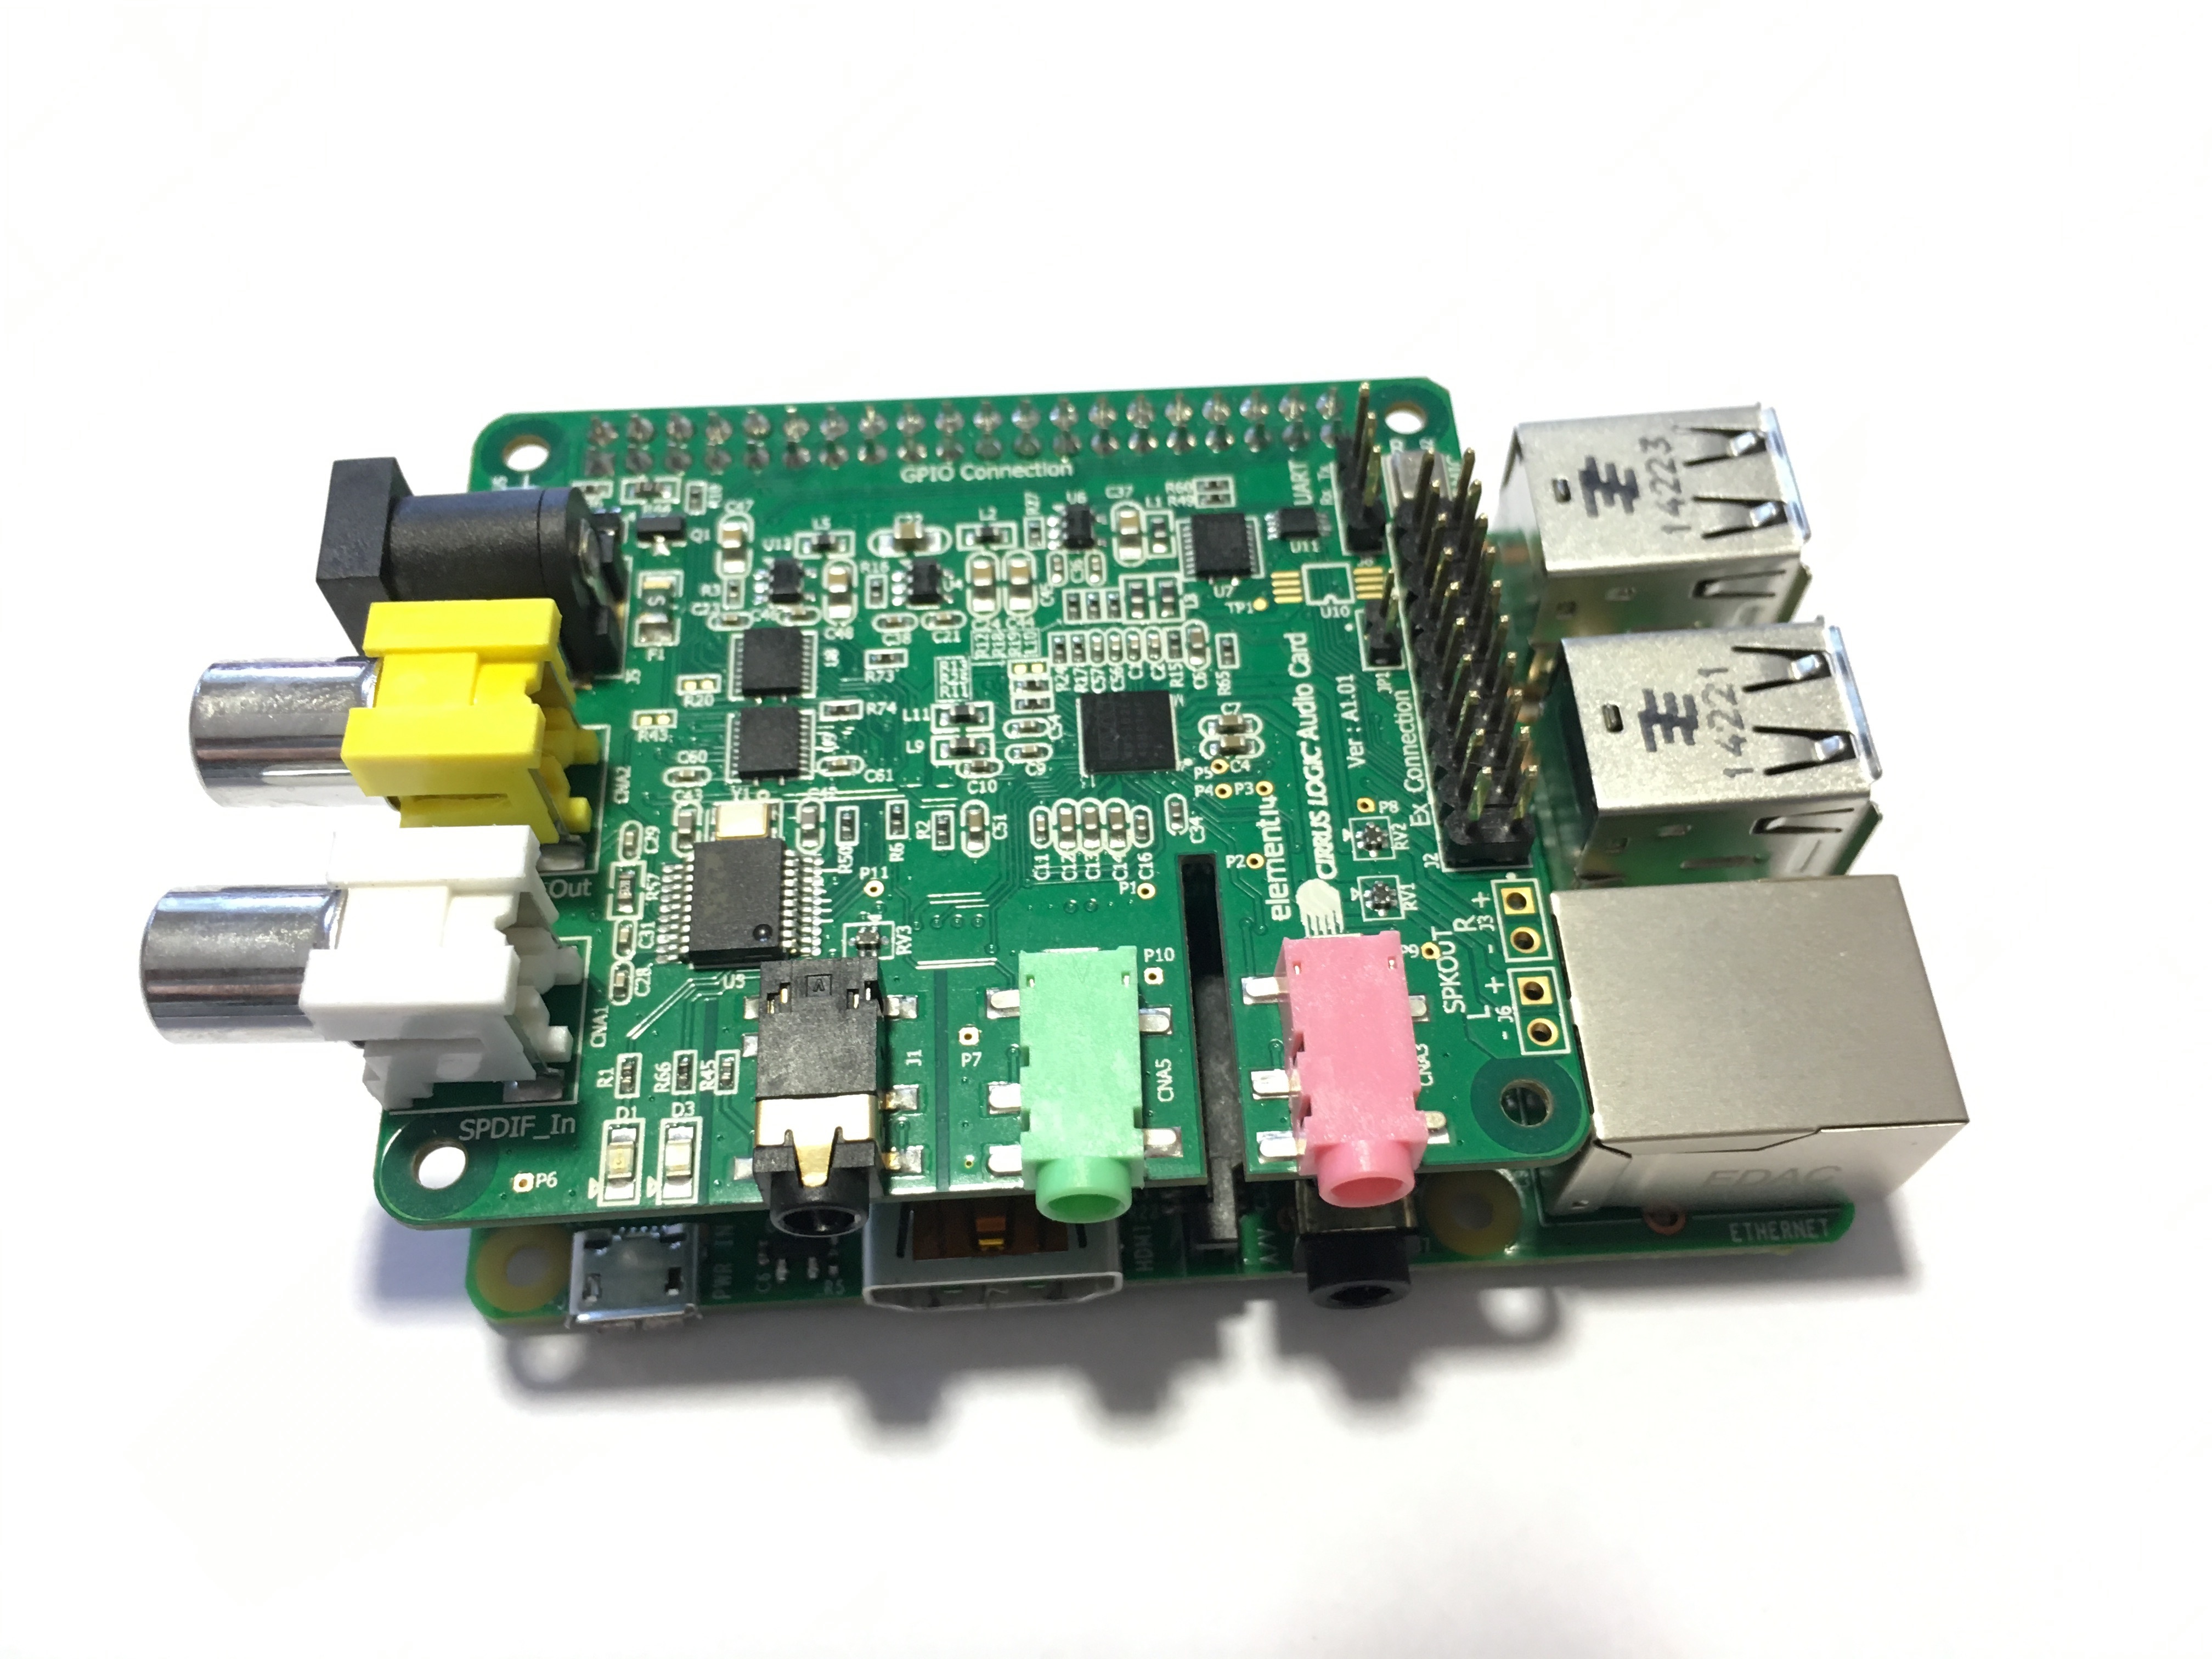 Connecting the Wolfson Sound Card to the Raspberry Pi3